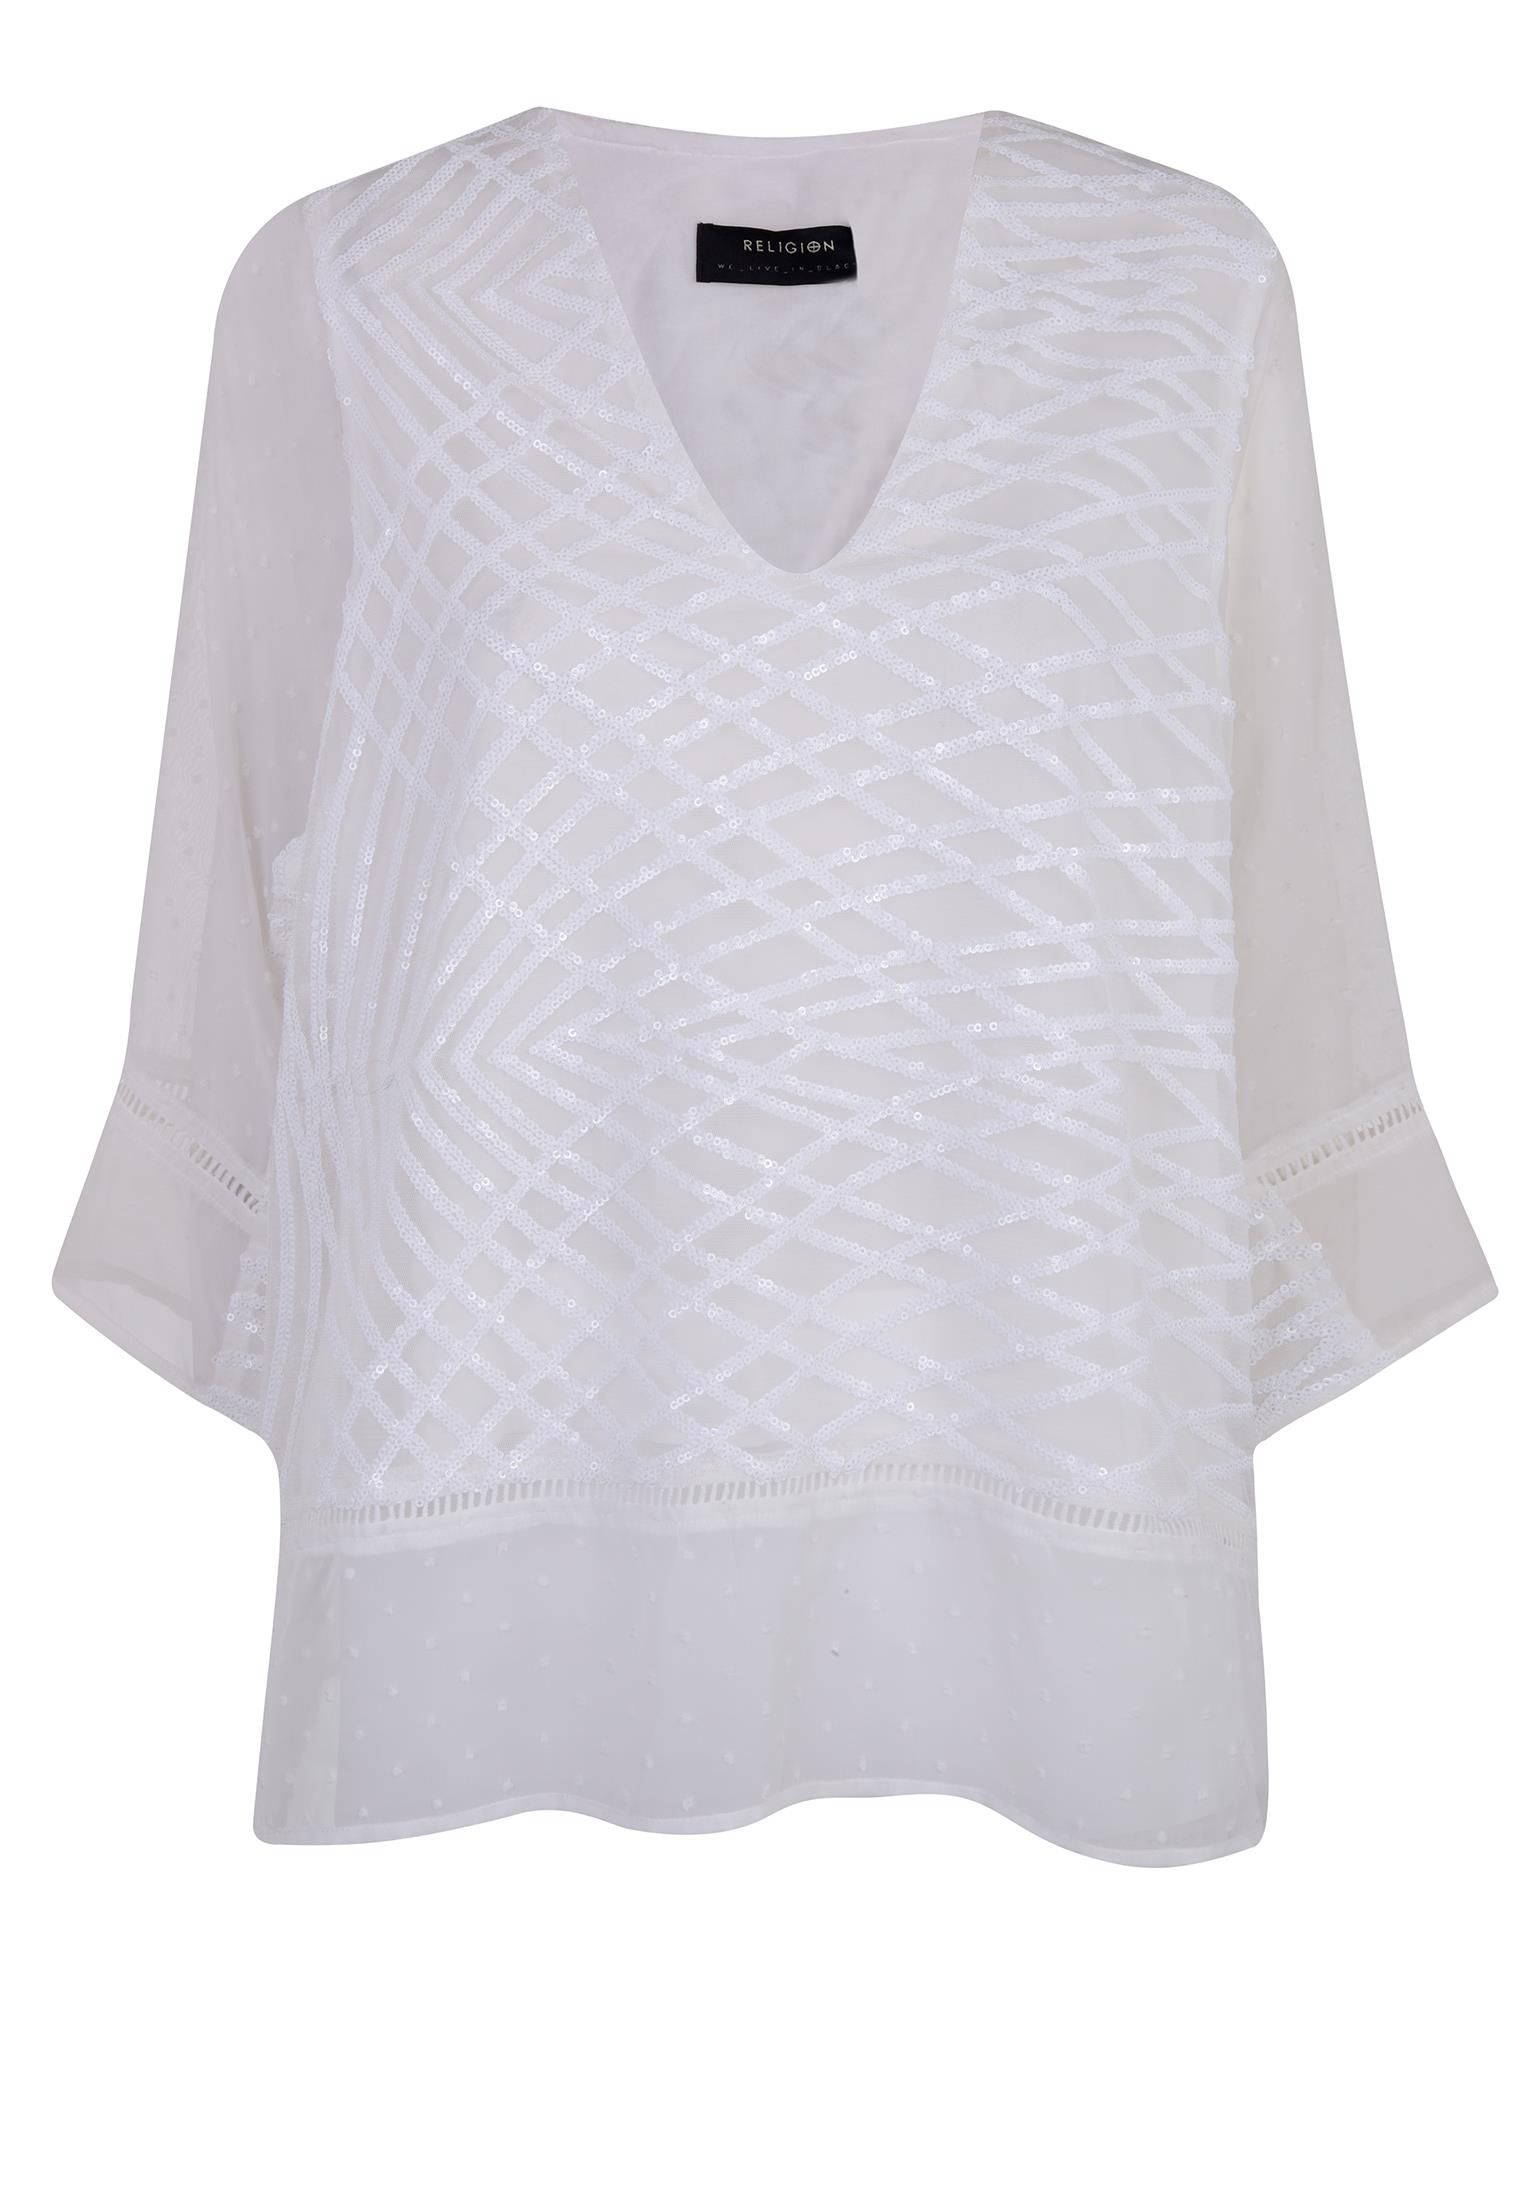 Religion Sheer elbow sleeve top, White